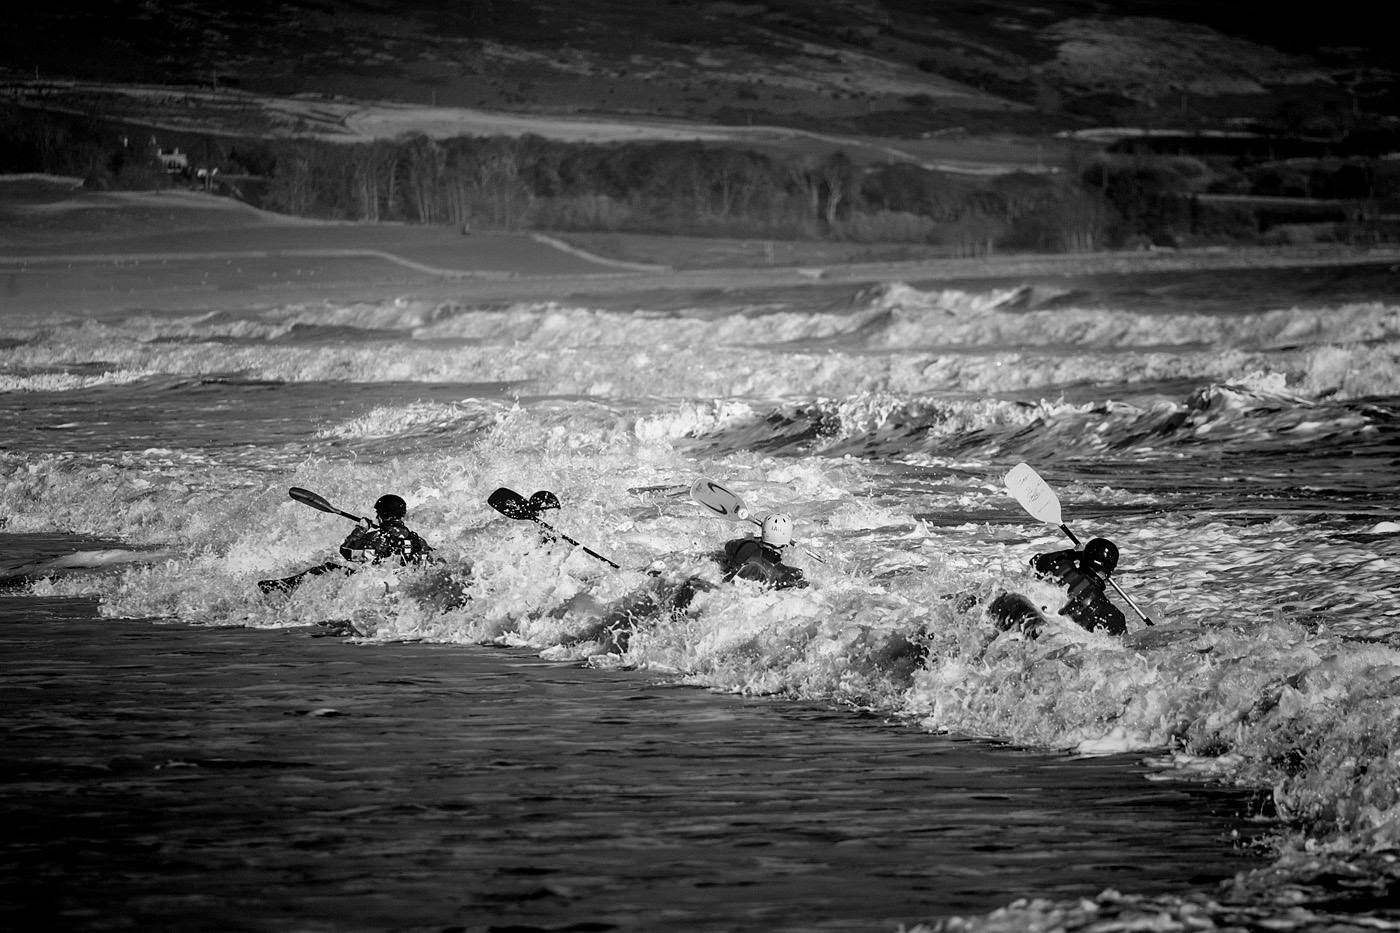 Surfing off of Brora beach with big wave